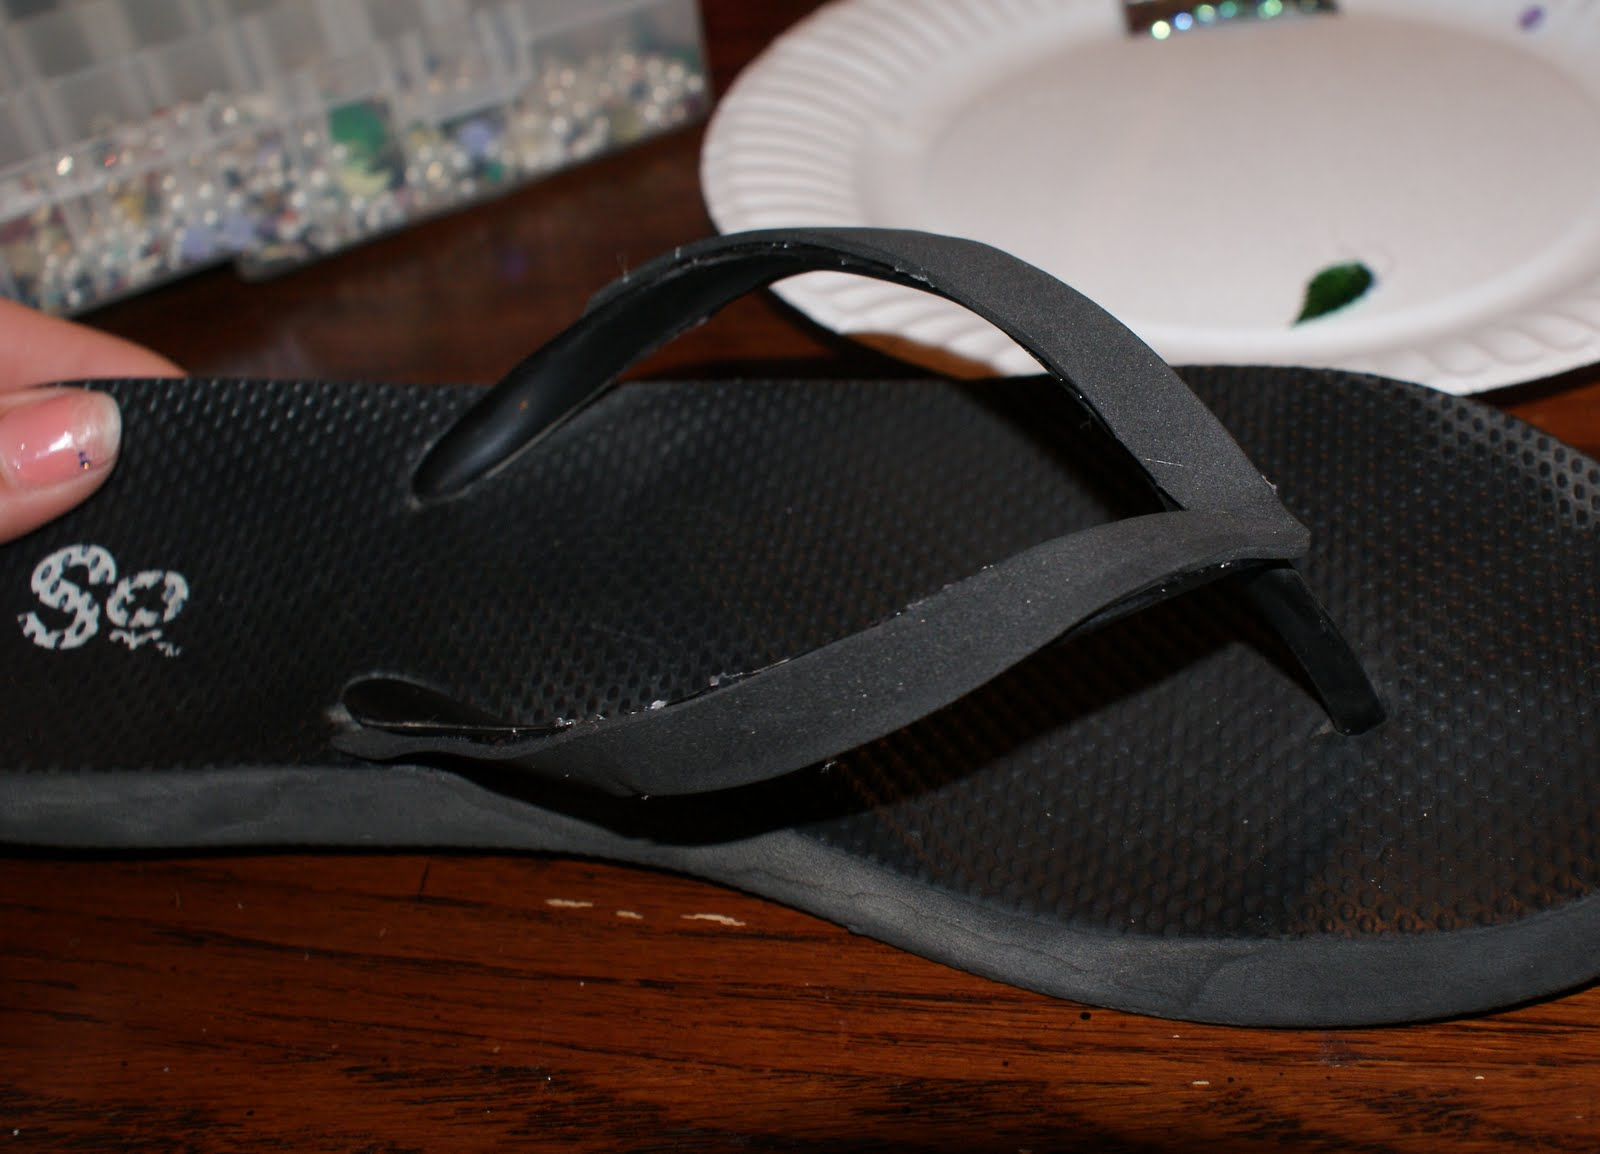 96e202c4469d1 Here you can see the foam is glued onto the strap of the flip flop. Now on  with the beading!